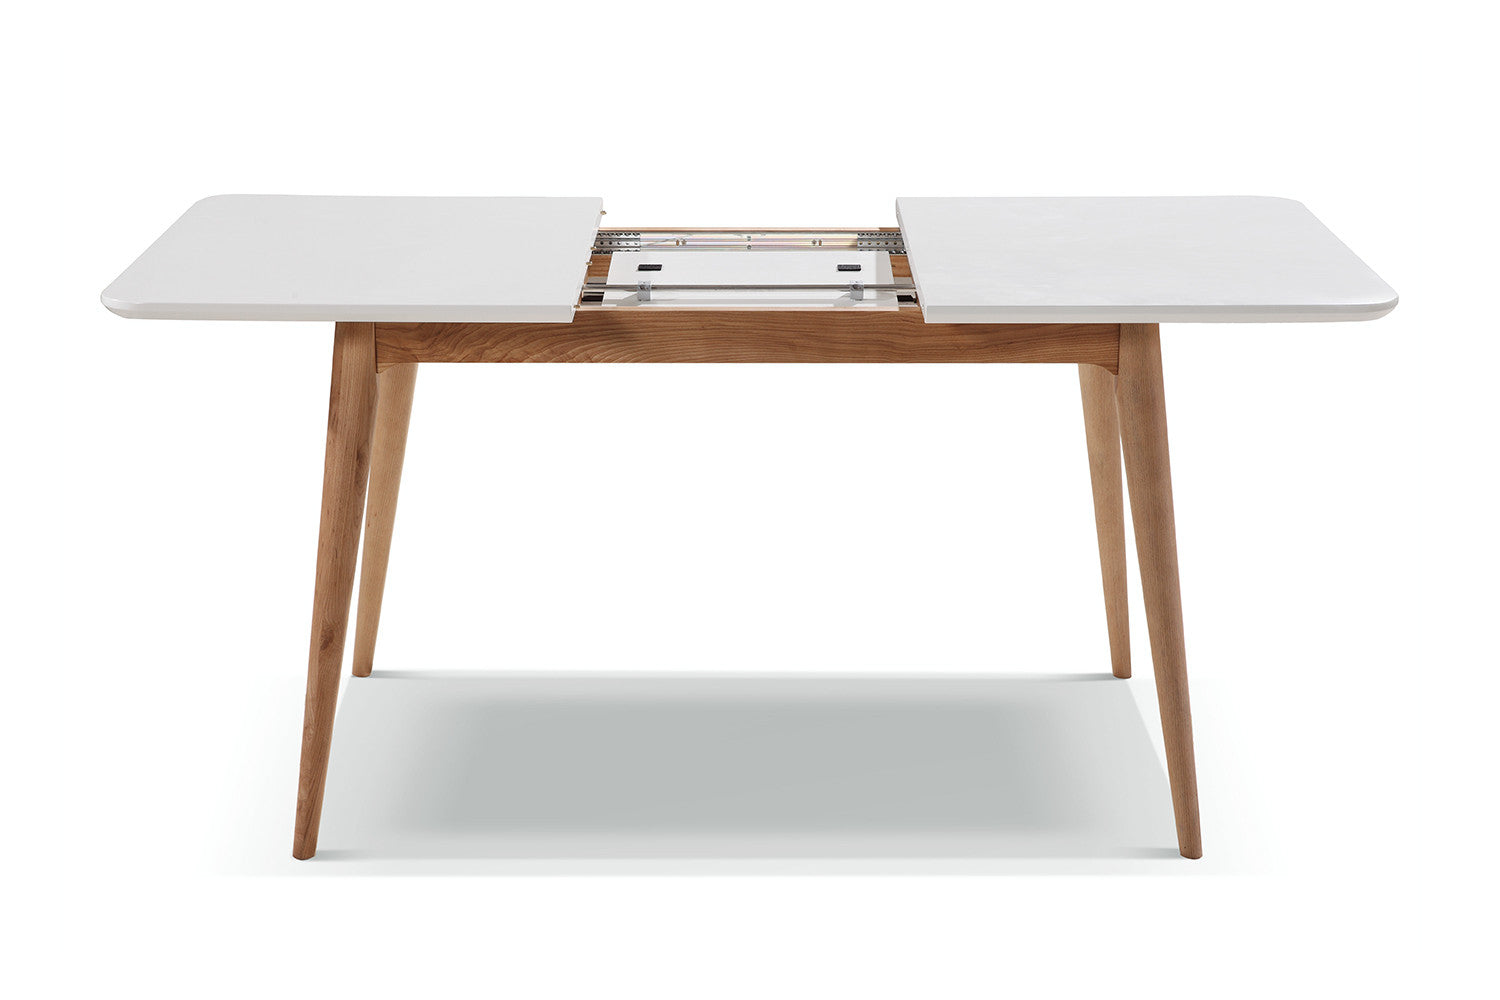 Table de cuisine extensible vintage breggia dewarens for Table a manger avec rallonge integree